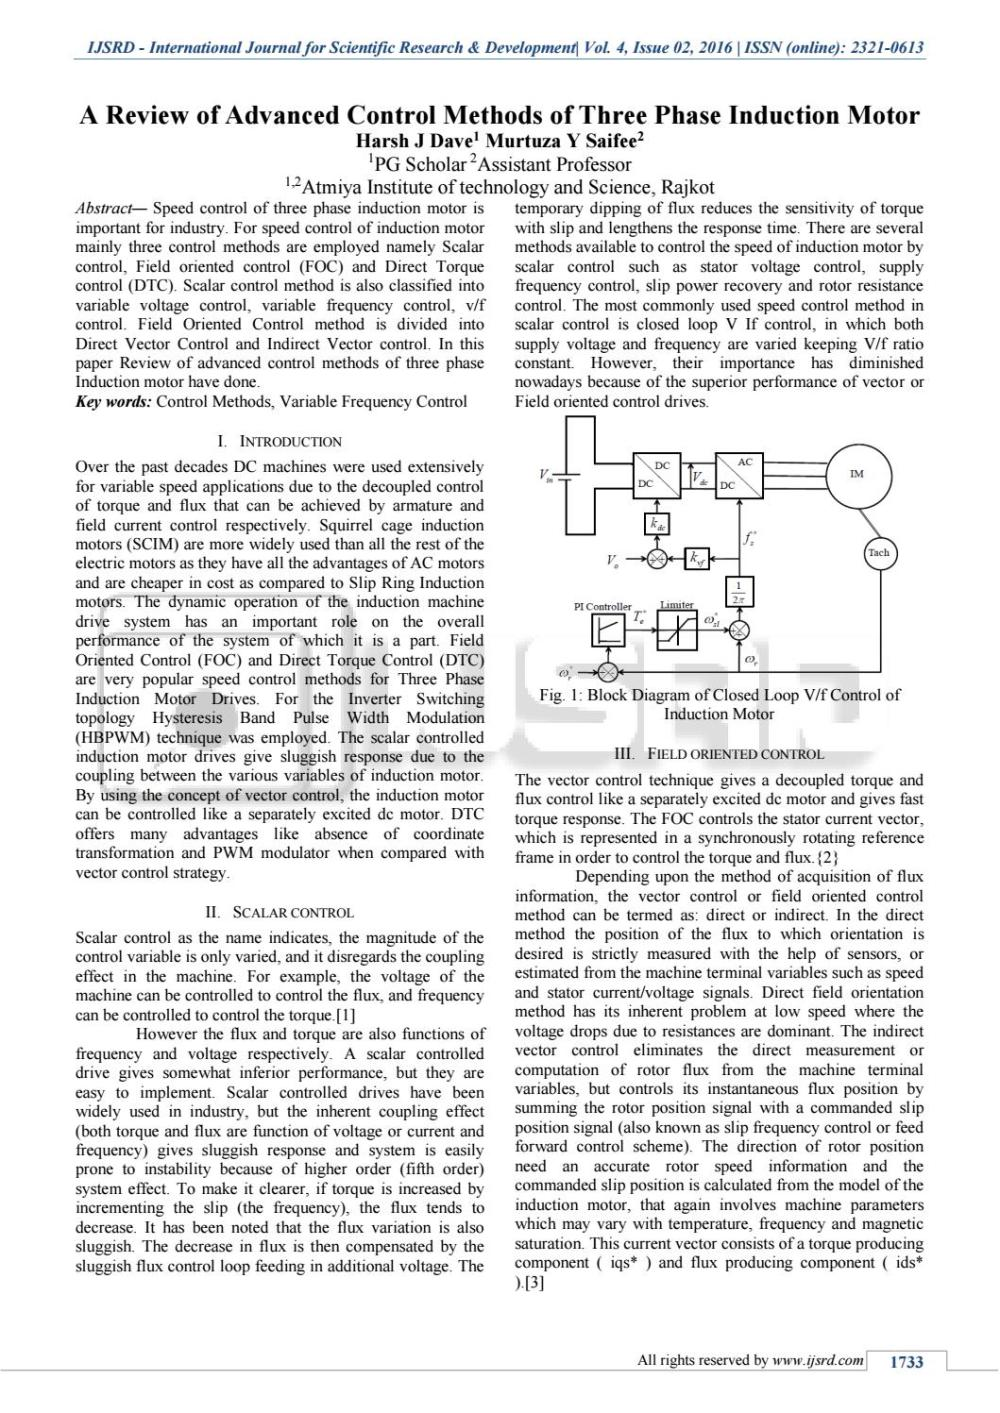 medium resolution of a review of advanced control methods of three phase induction motor